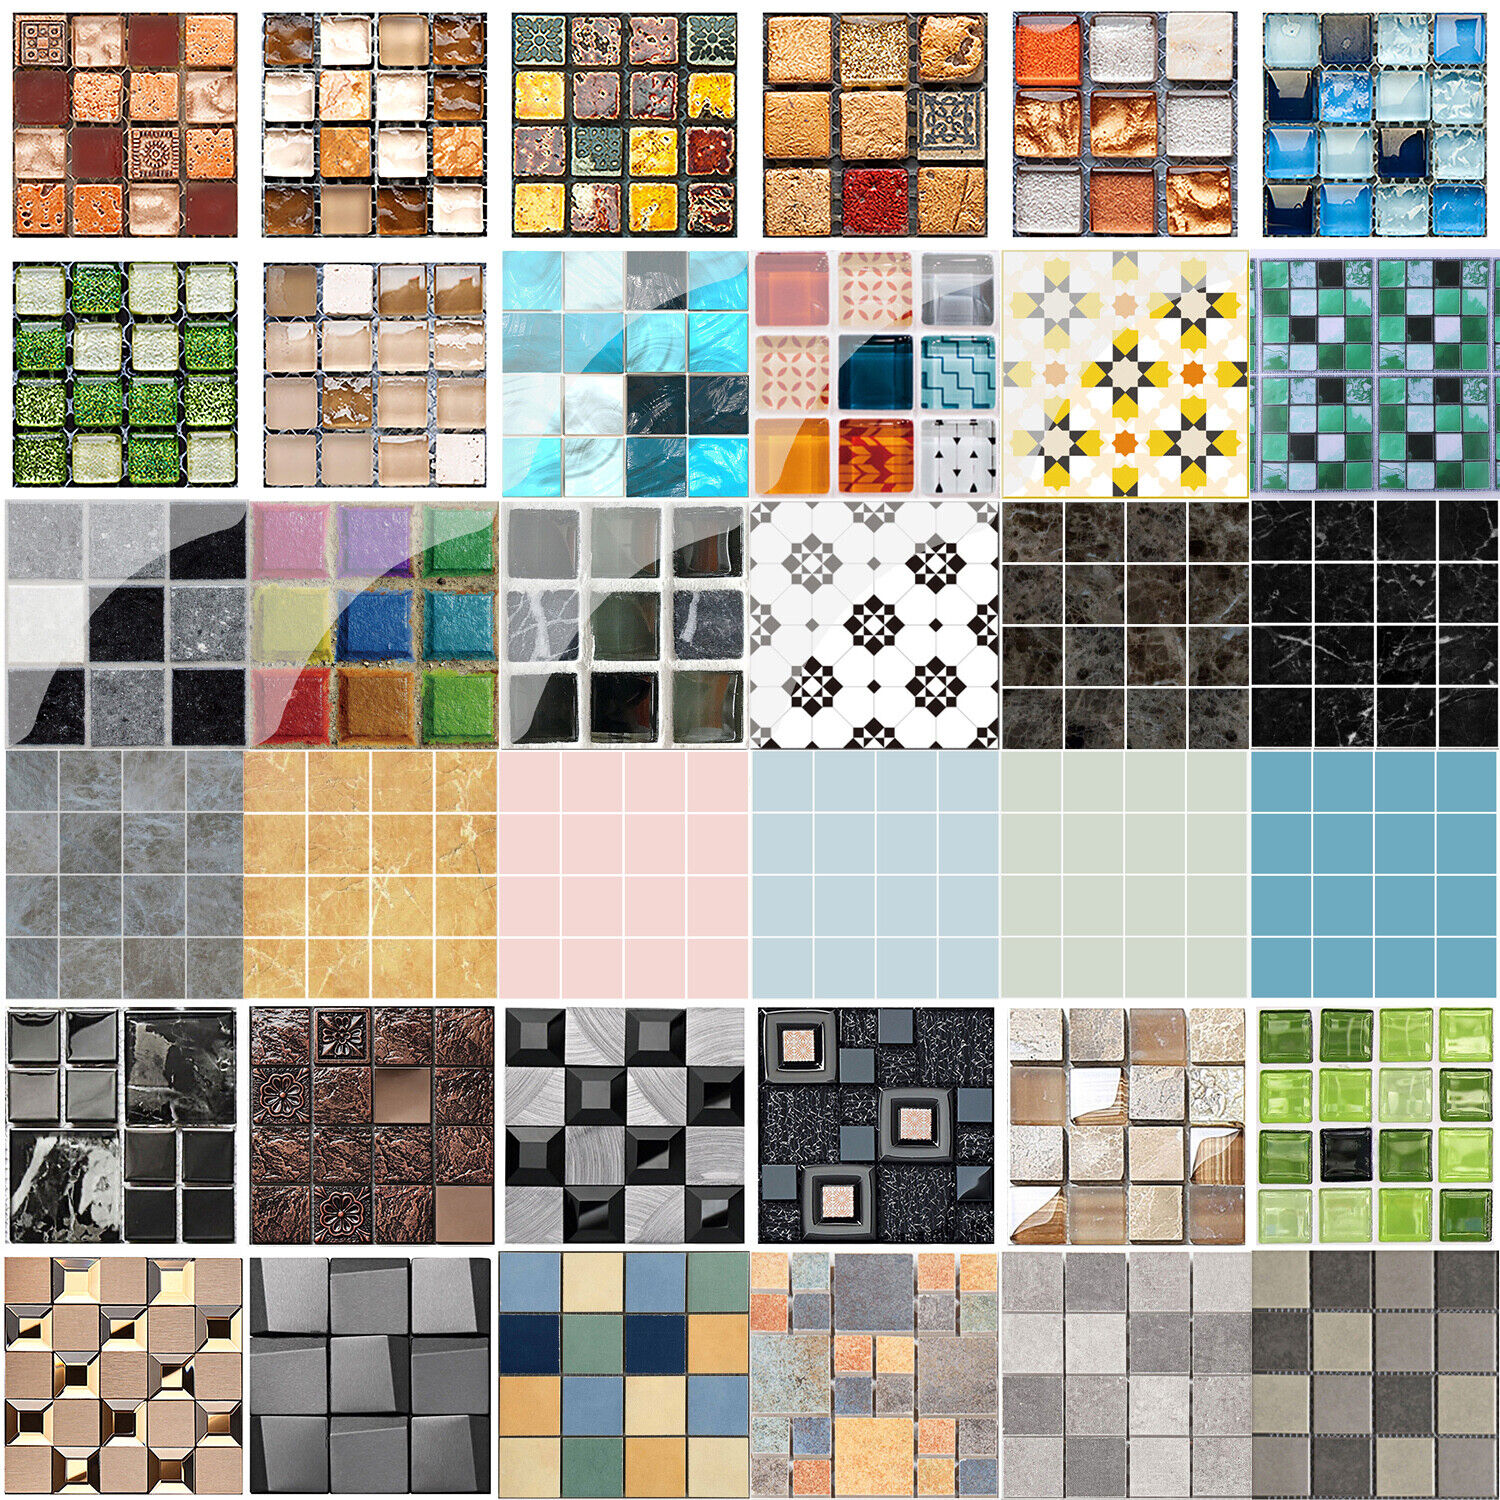 Home Decoration - 3D Kitchen Tile Stickers Bathroom Mosaic Sticker Self-adhesive Wall Decor Home